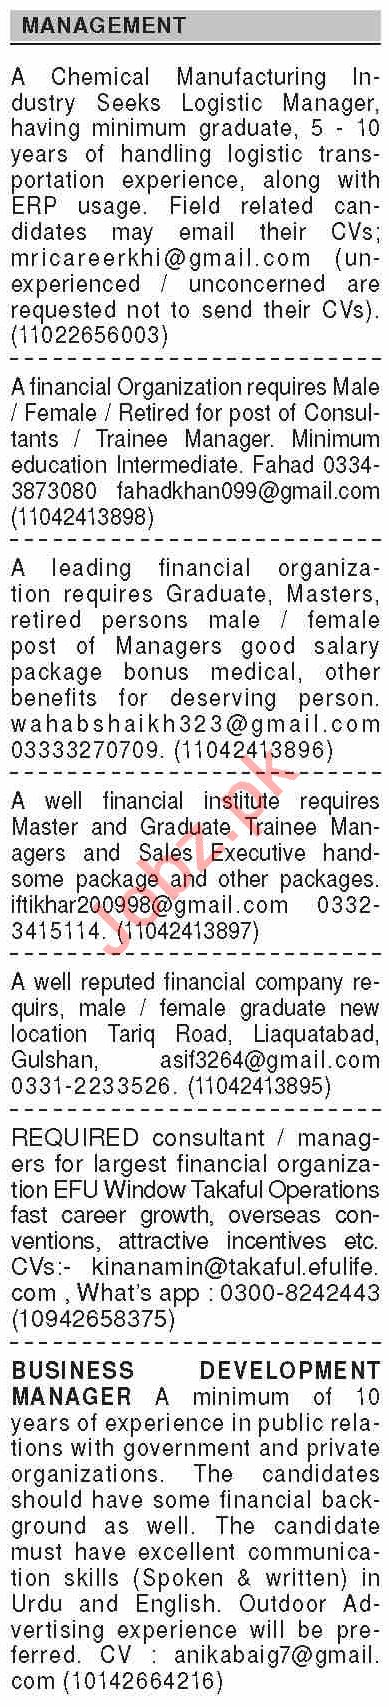 Dawn Sunday Classified Ads 11 April 2021 for Management